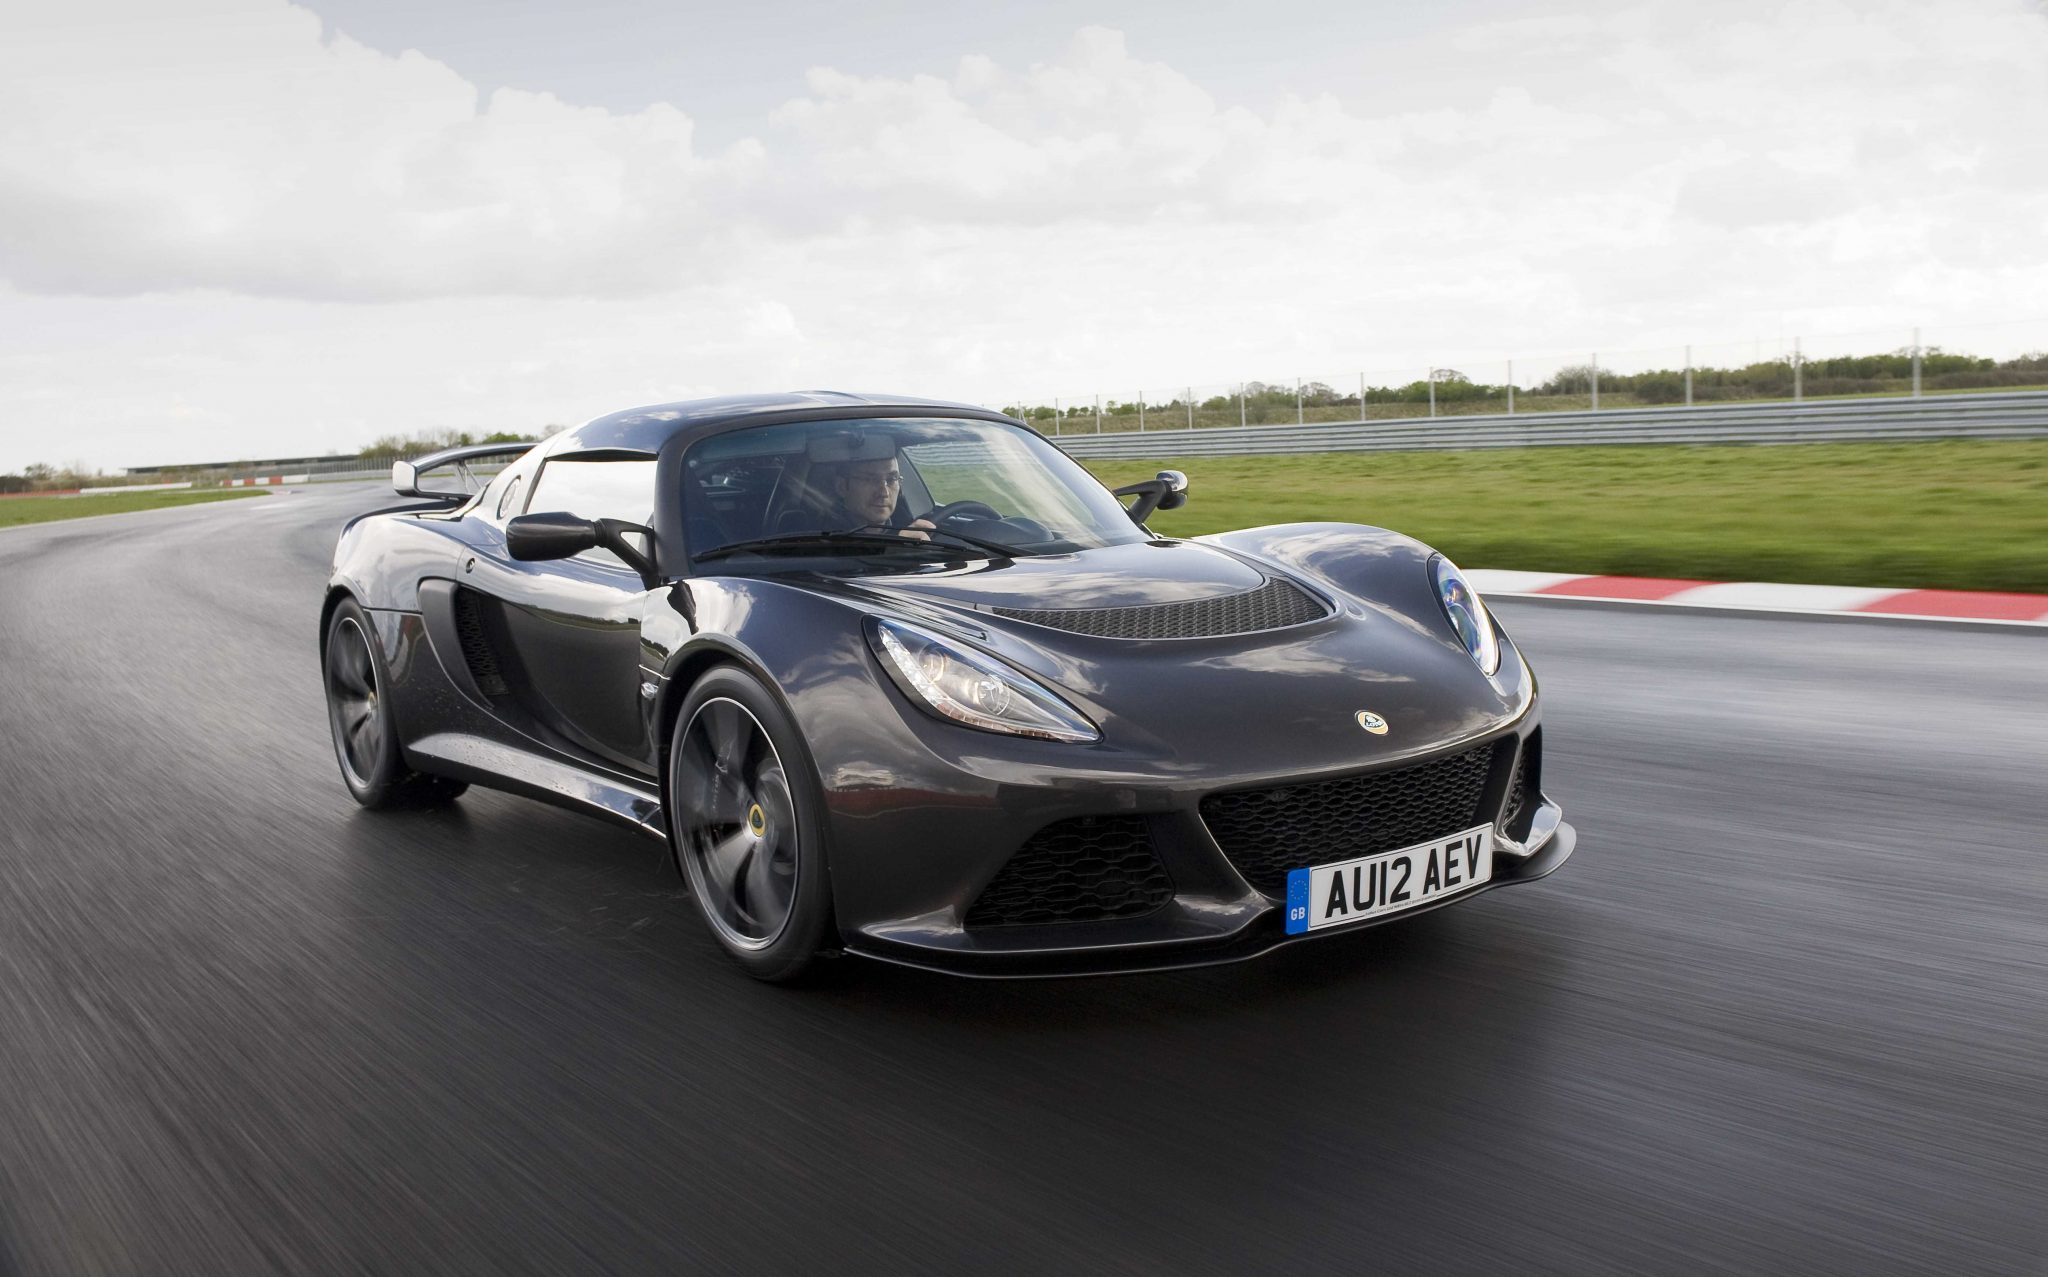 lotus cars news exige s supercar performance for less. Black Bedroom Furniture Sets. Home Design Ideas